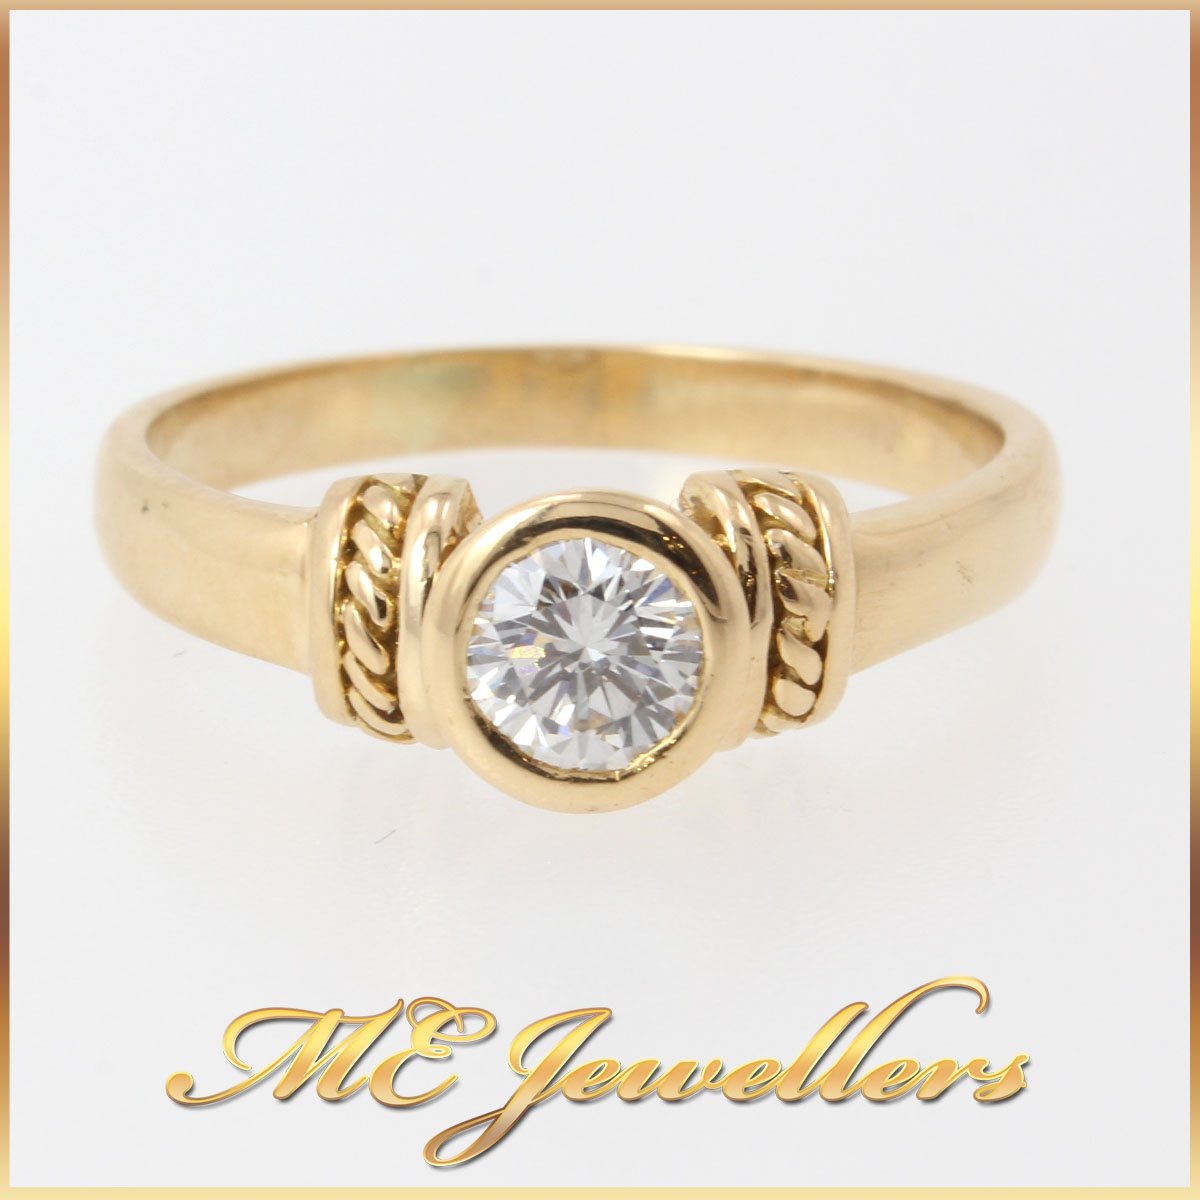 4110_0.45ct Round Brilliant Cut Solitaire Modern Engagement Ring 18kt 18k 18ct Yellow Gold (3)